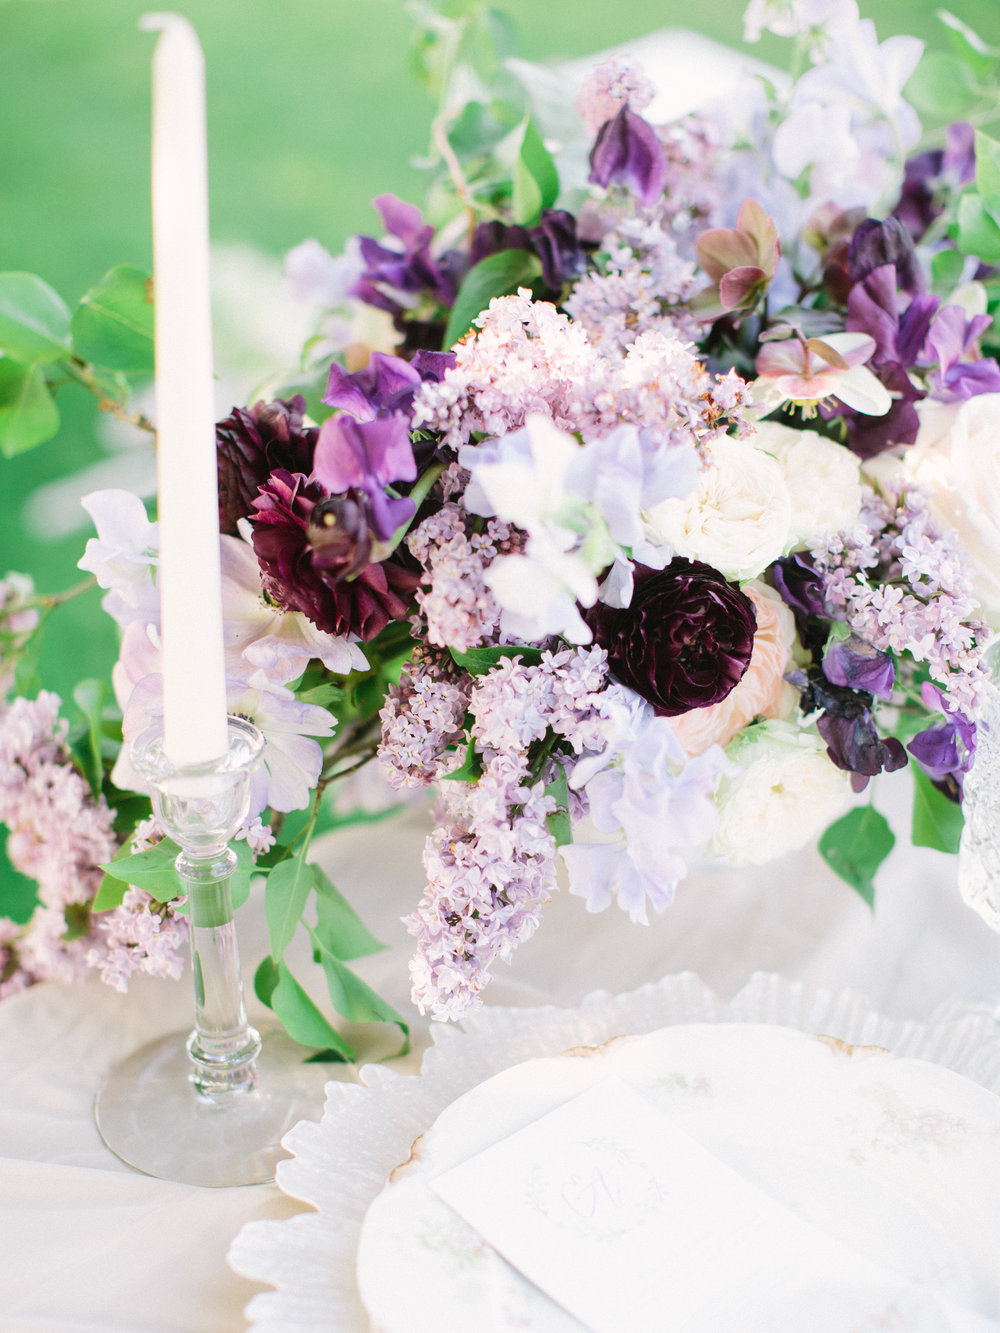 This-Love-of-Yours-Kirigin-Cellars-Flower-Arch-Styled-Shoot-132.jpg